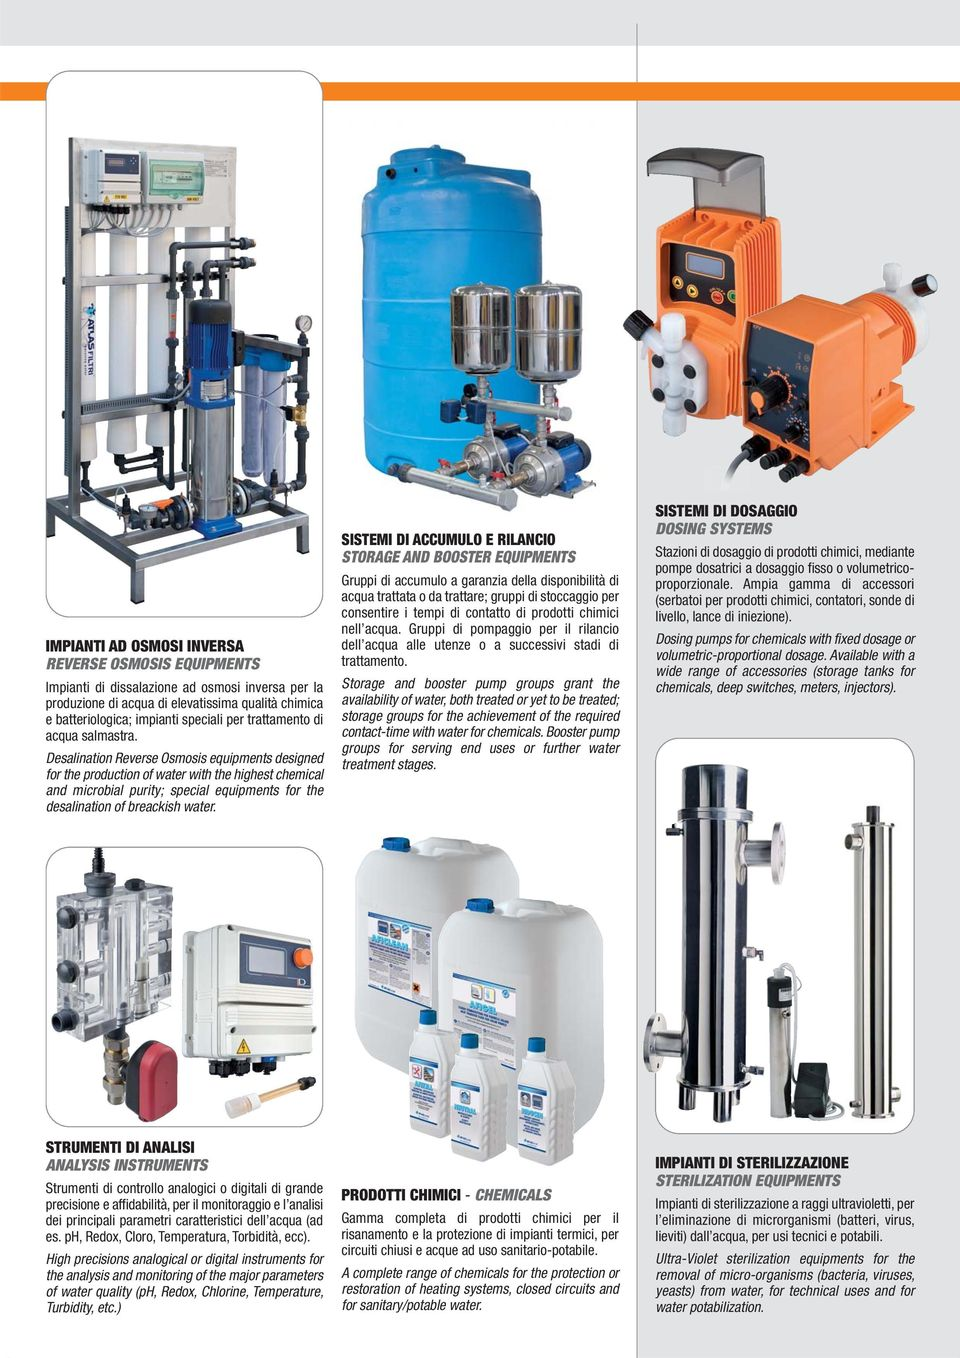 Desalination Reverse Osmosis equipments designed for the production of water with the highest chemical and microbial purity; special equipments for the desalination of breackish water.